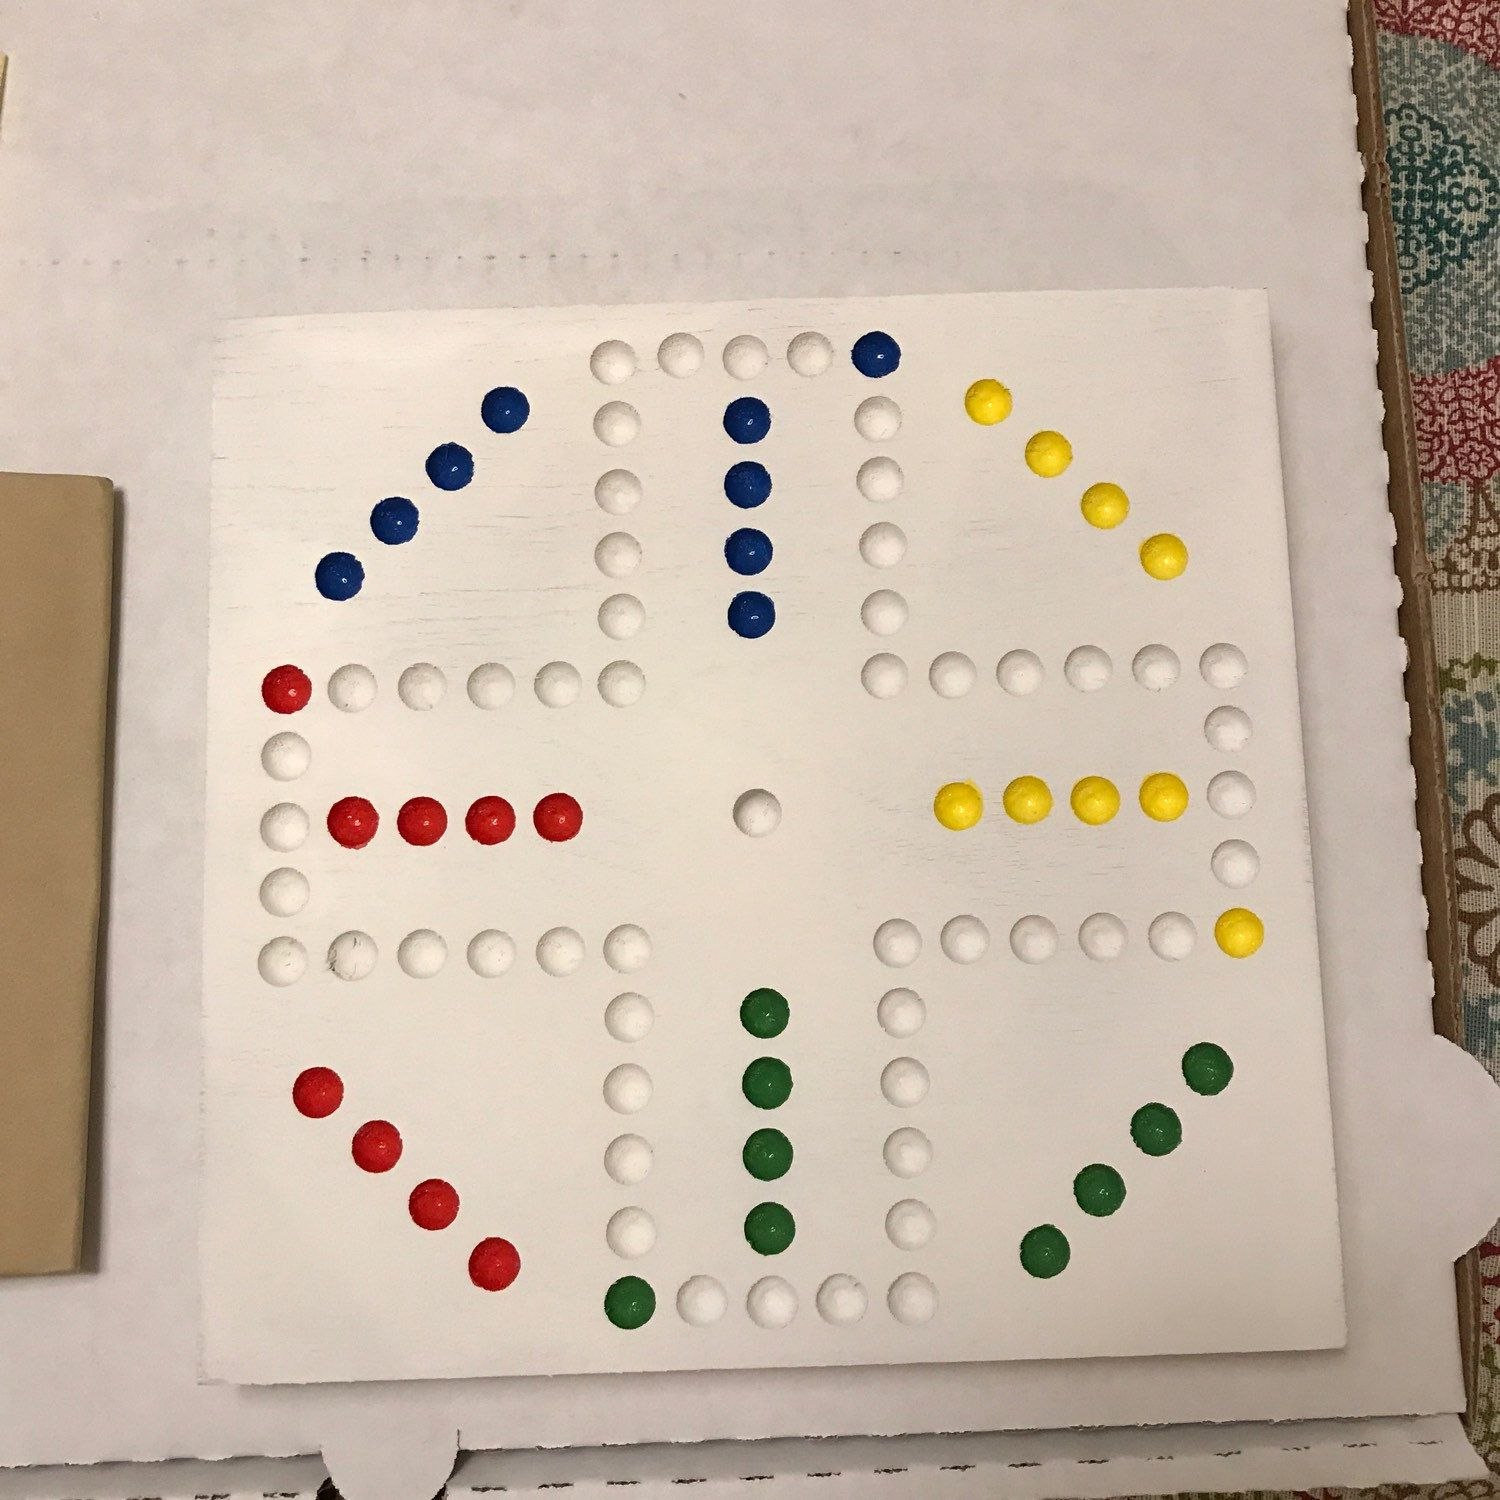 15 Aspen Or Pine 4 Player Aggravation Board Wahoo With Marbles